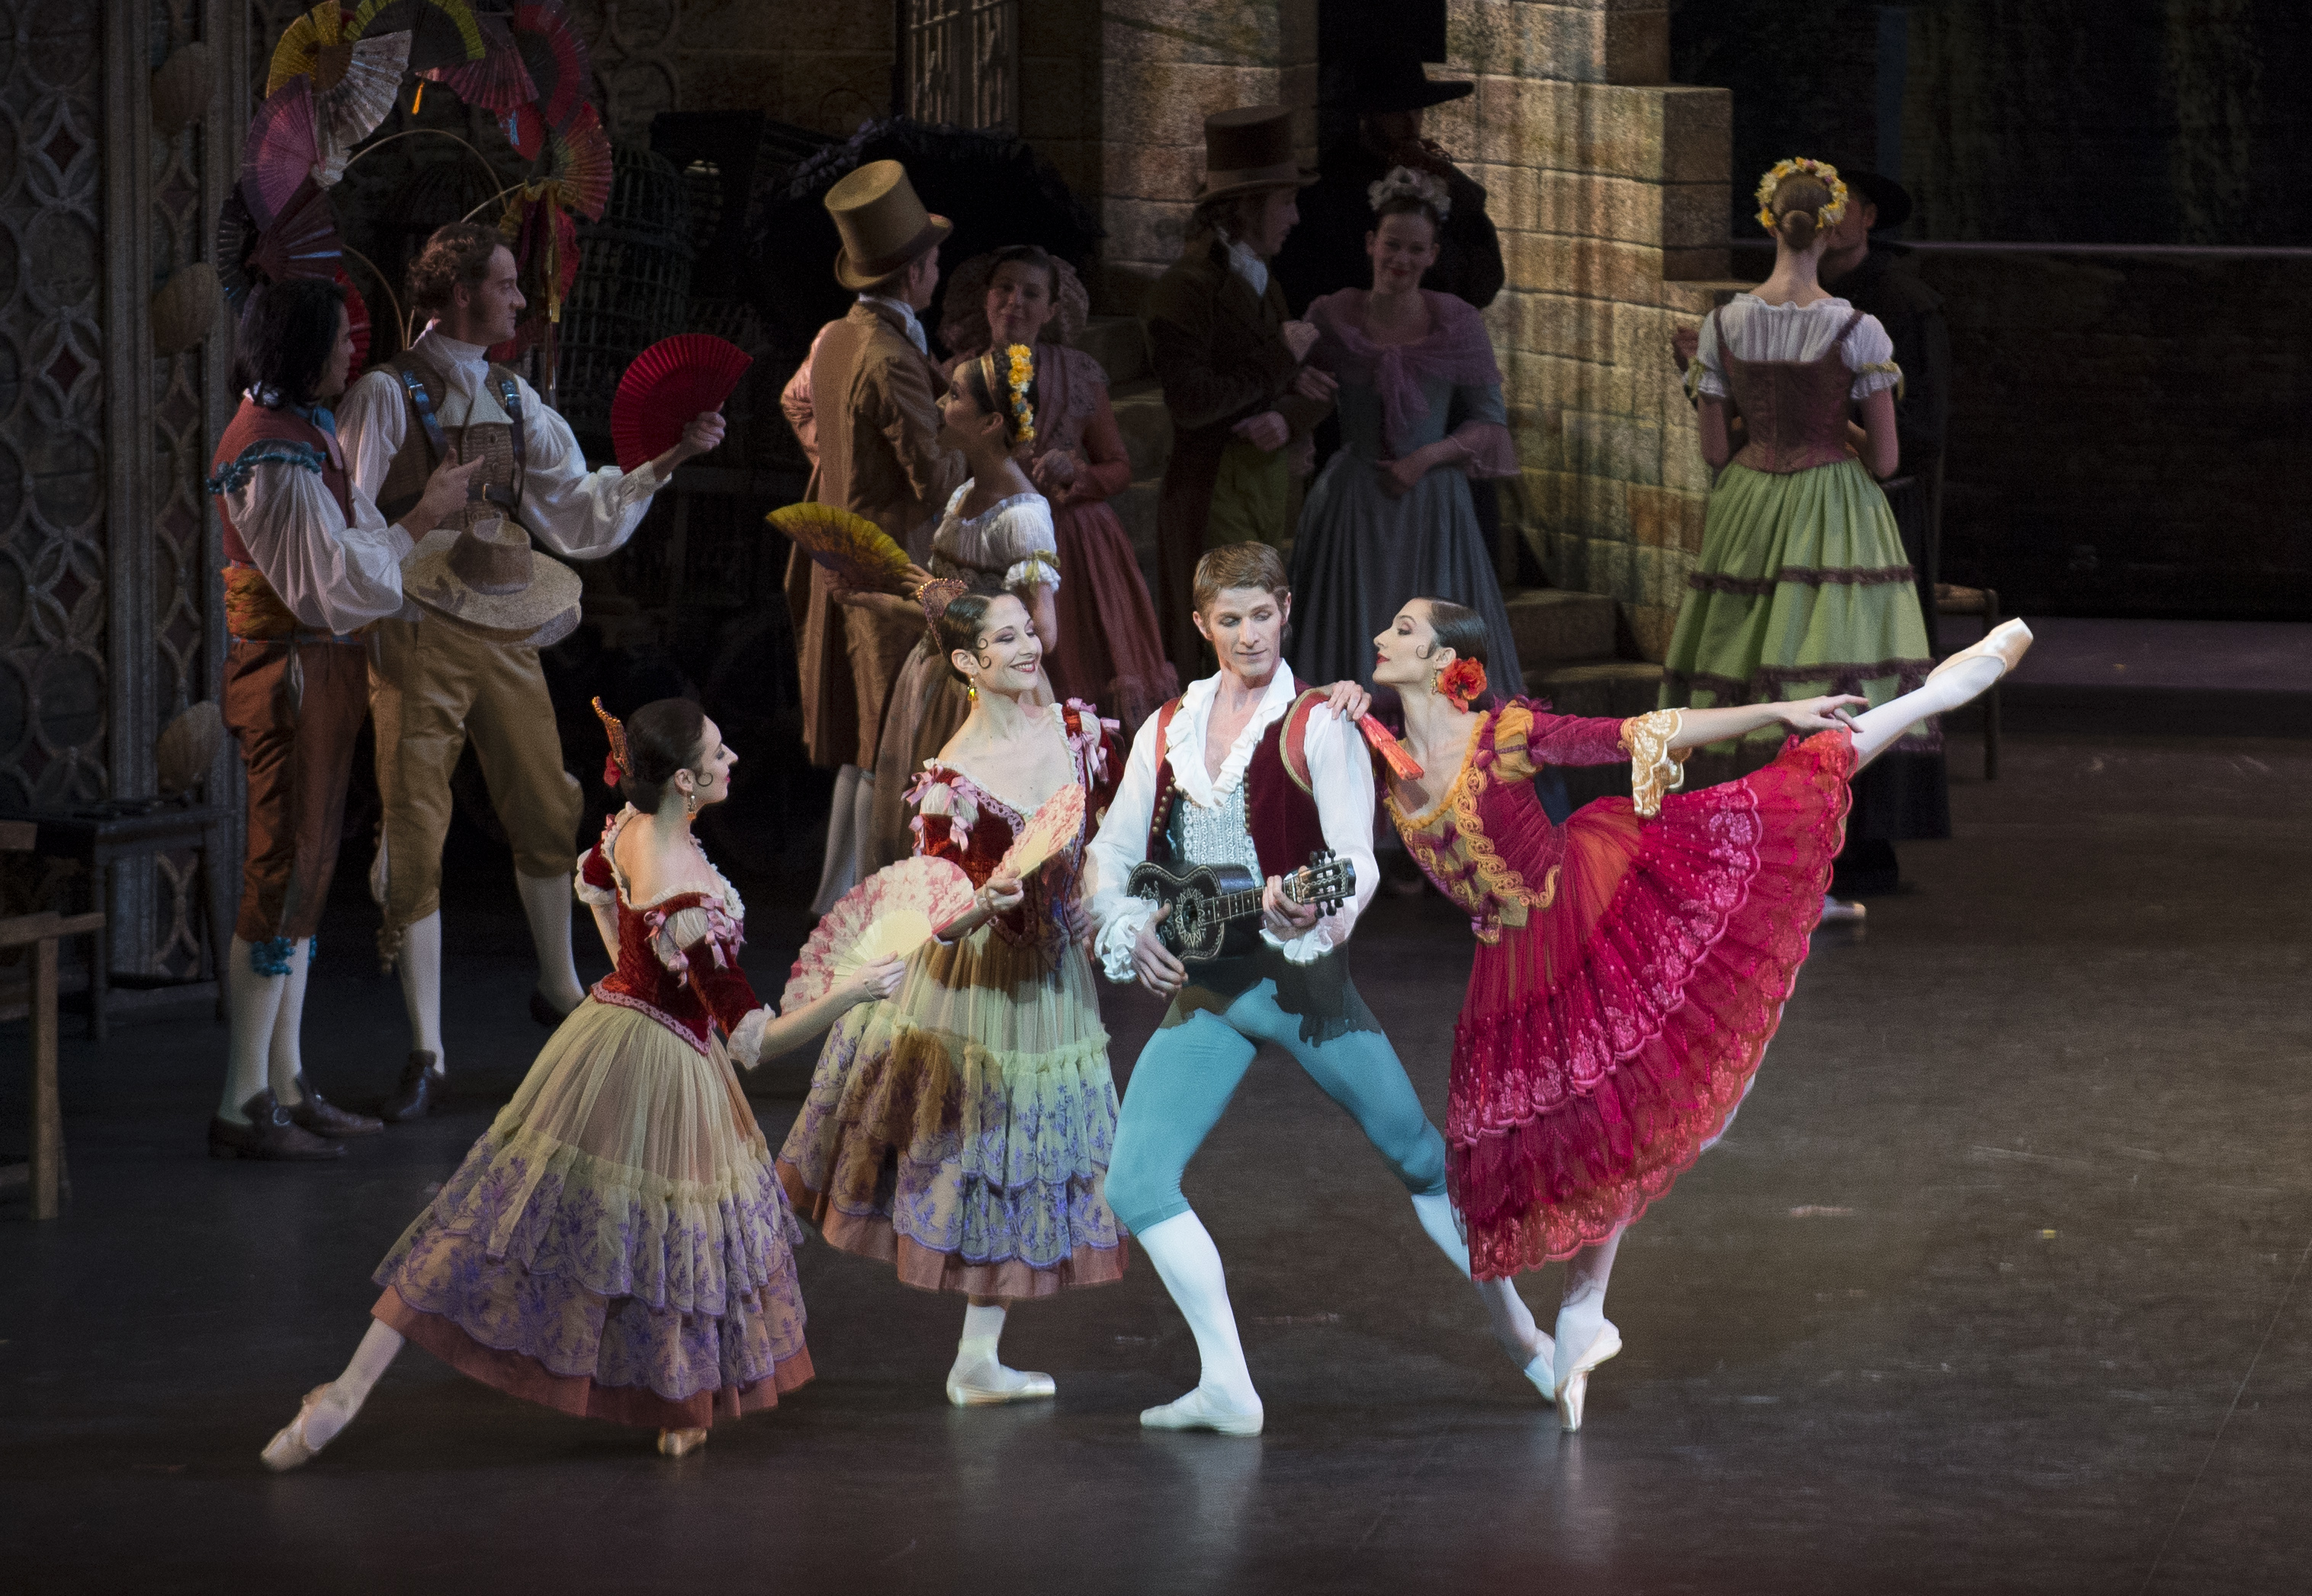 Arte Concert Opera De Paris Ballet Don Quixote By Nureyev After Petipa Music By Minkus